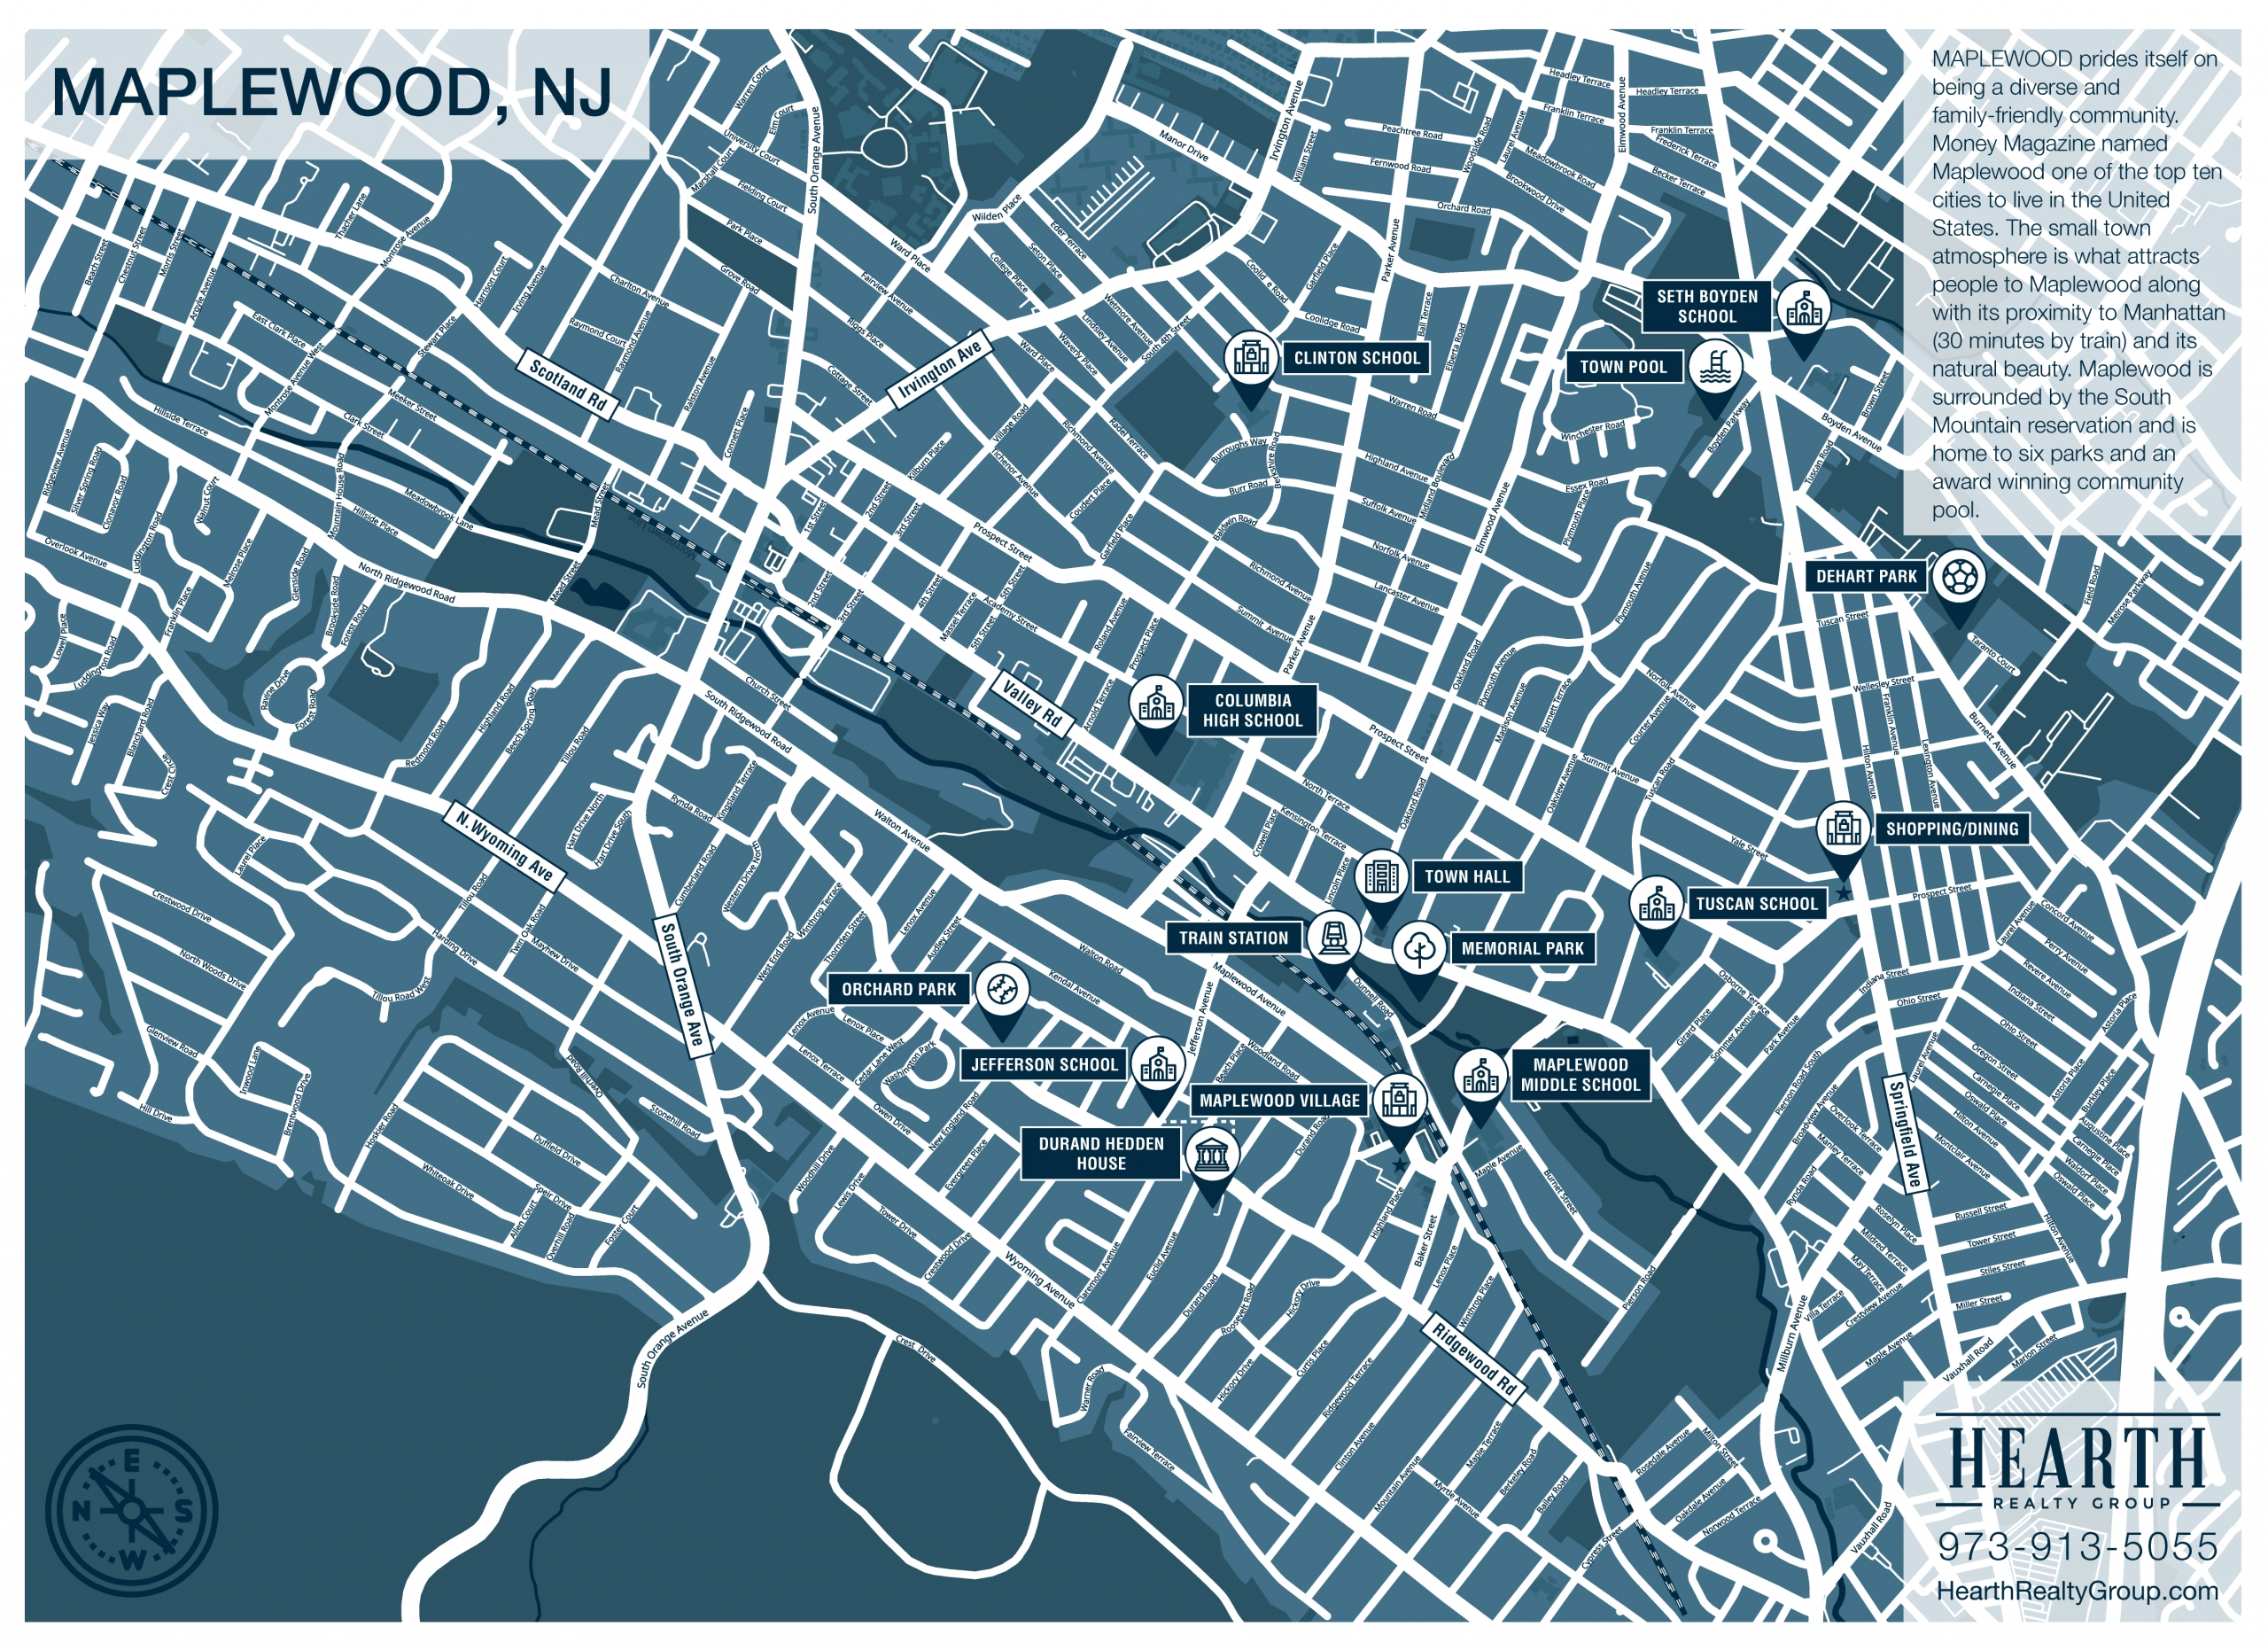 Free Printable Map of Maplewood NJ